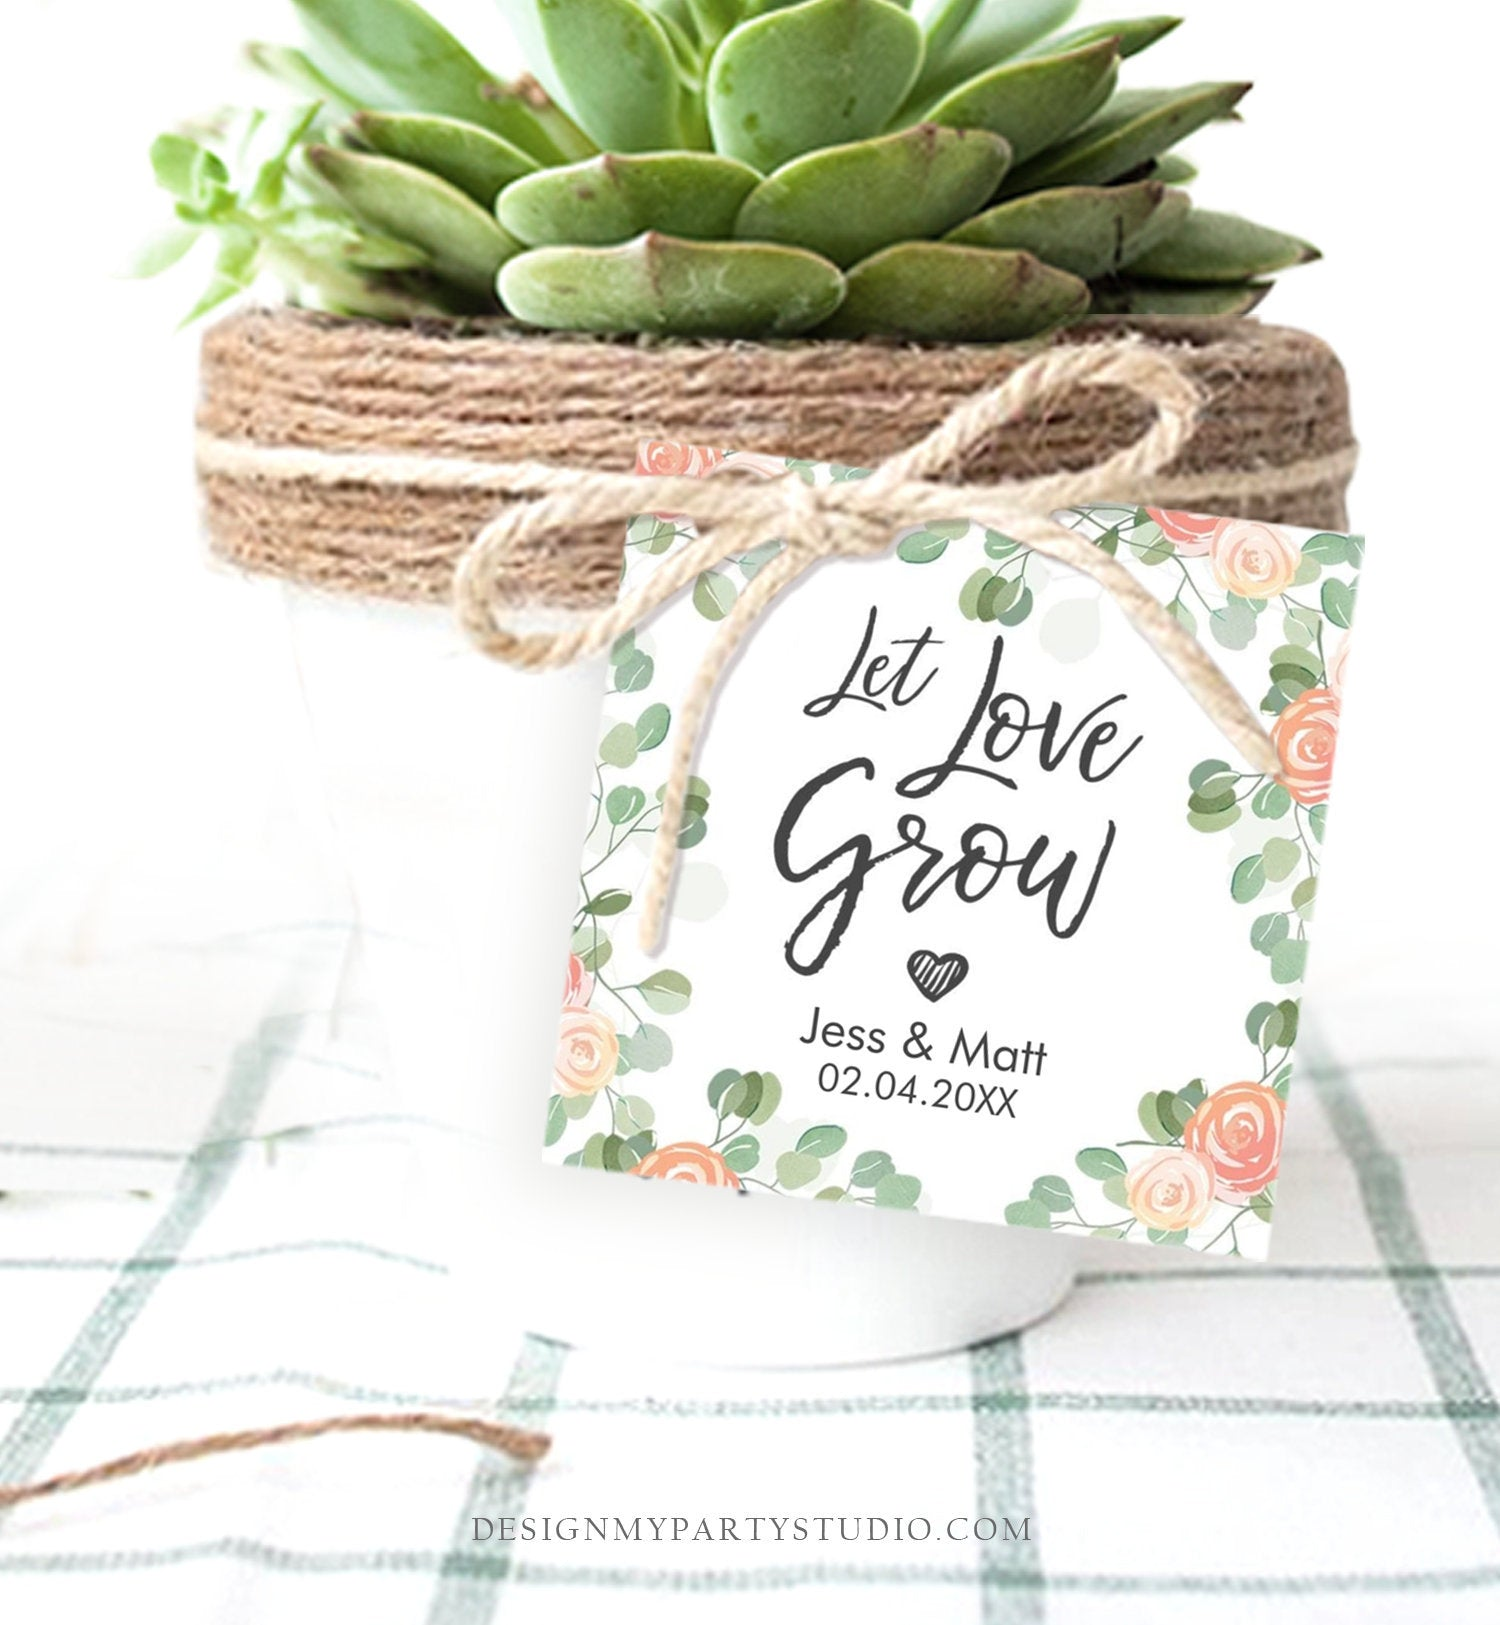 Editable Watch Love Grow Tags Wedding Shower Favor Tags Plant Tags Cactus Succulent Thank You Tag Download Corjl Template Printable 0029